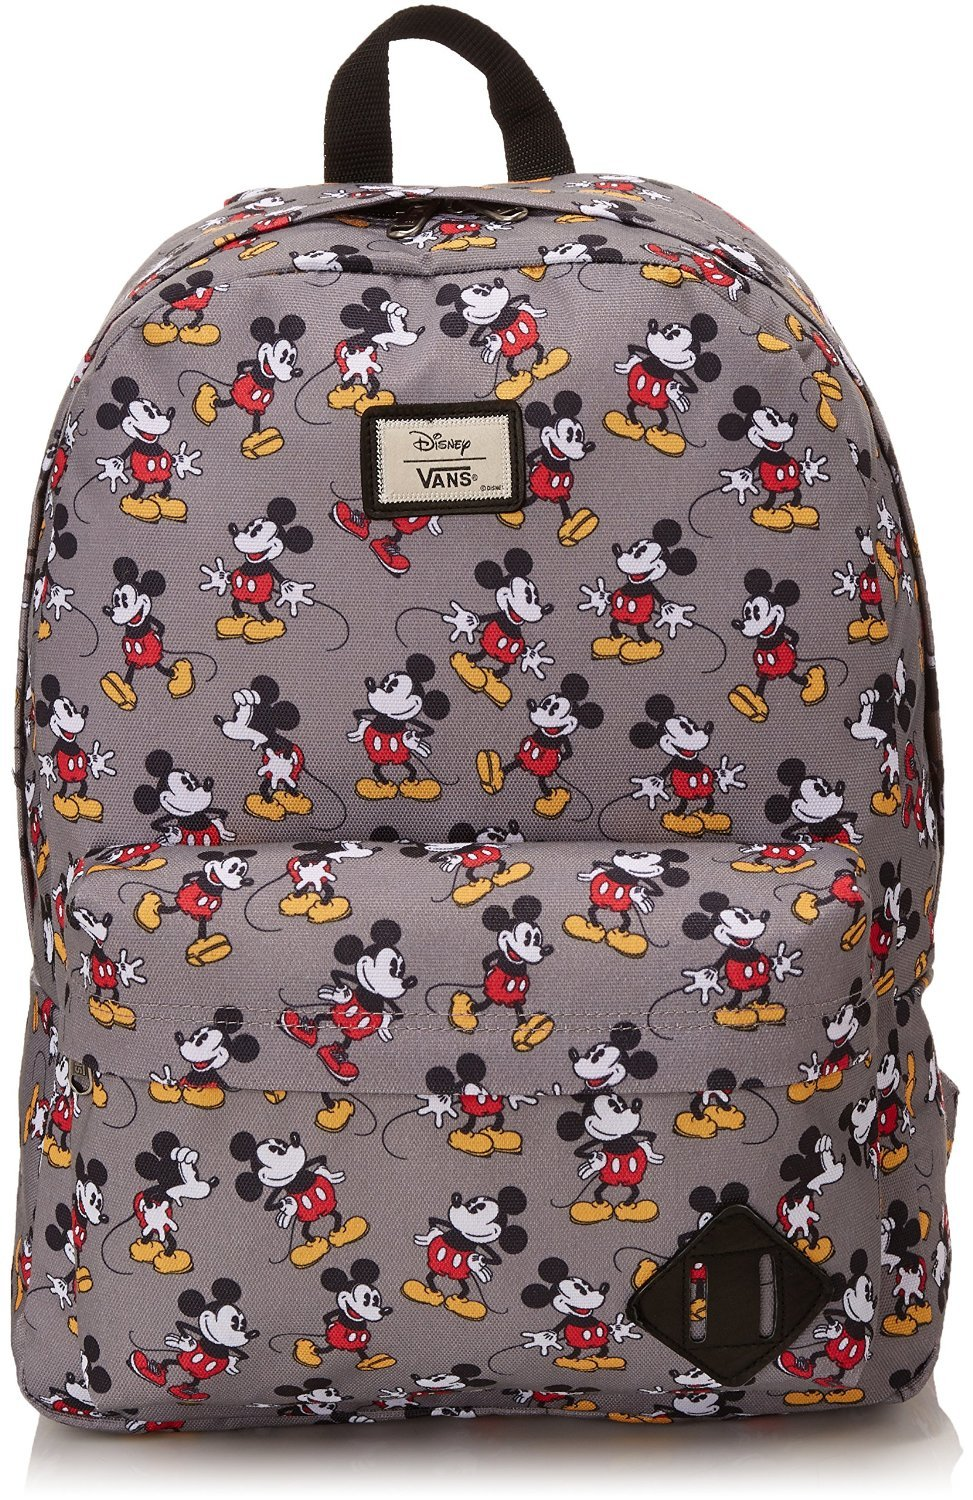 23a3594374a Vans recently released some very cool Disney Backpack designs I found on  Amazon. Since school is starting next month I thought these would be a  great way to ...